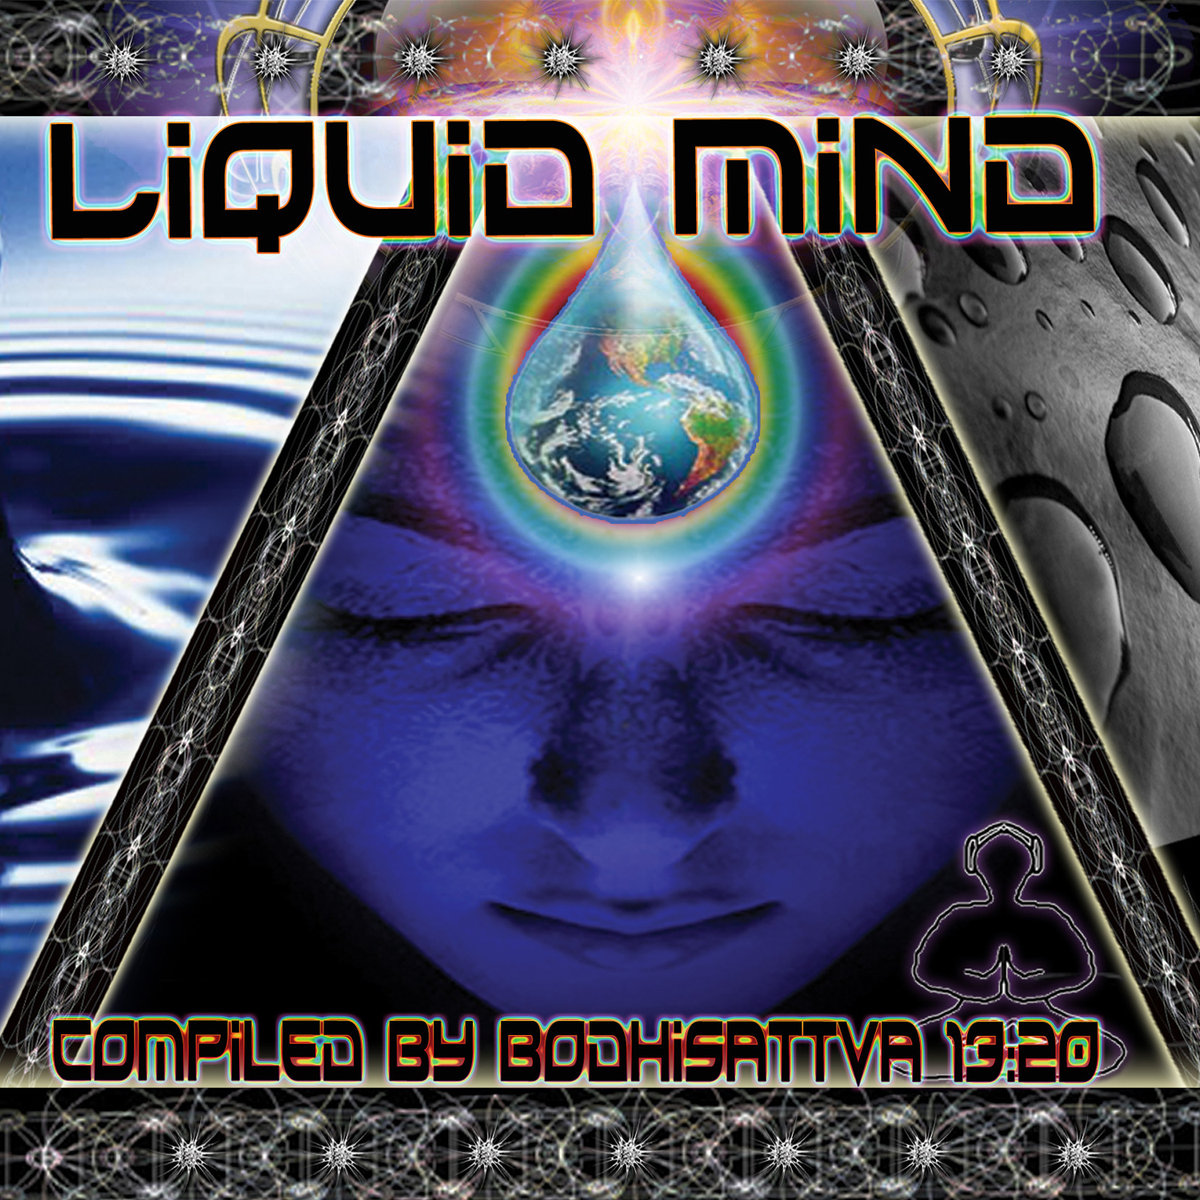 Mubali - Dribbla's Delight @ 'Various Artists - Liquid Mind (Compiled by Bodhisattva 13:20)' album (electronic, and)